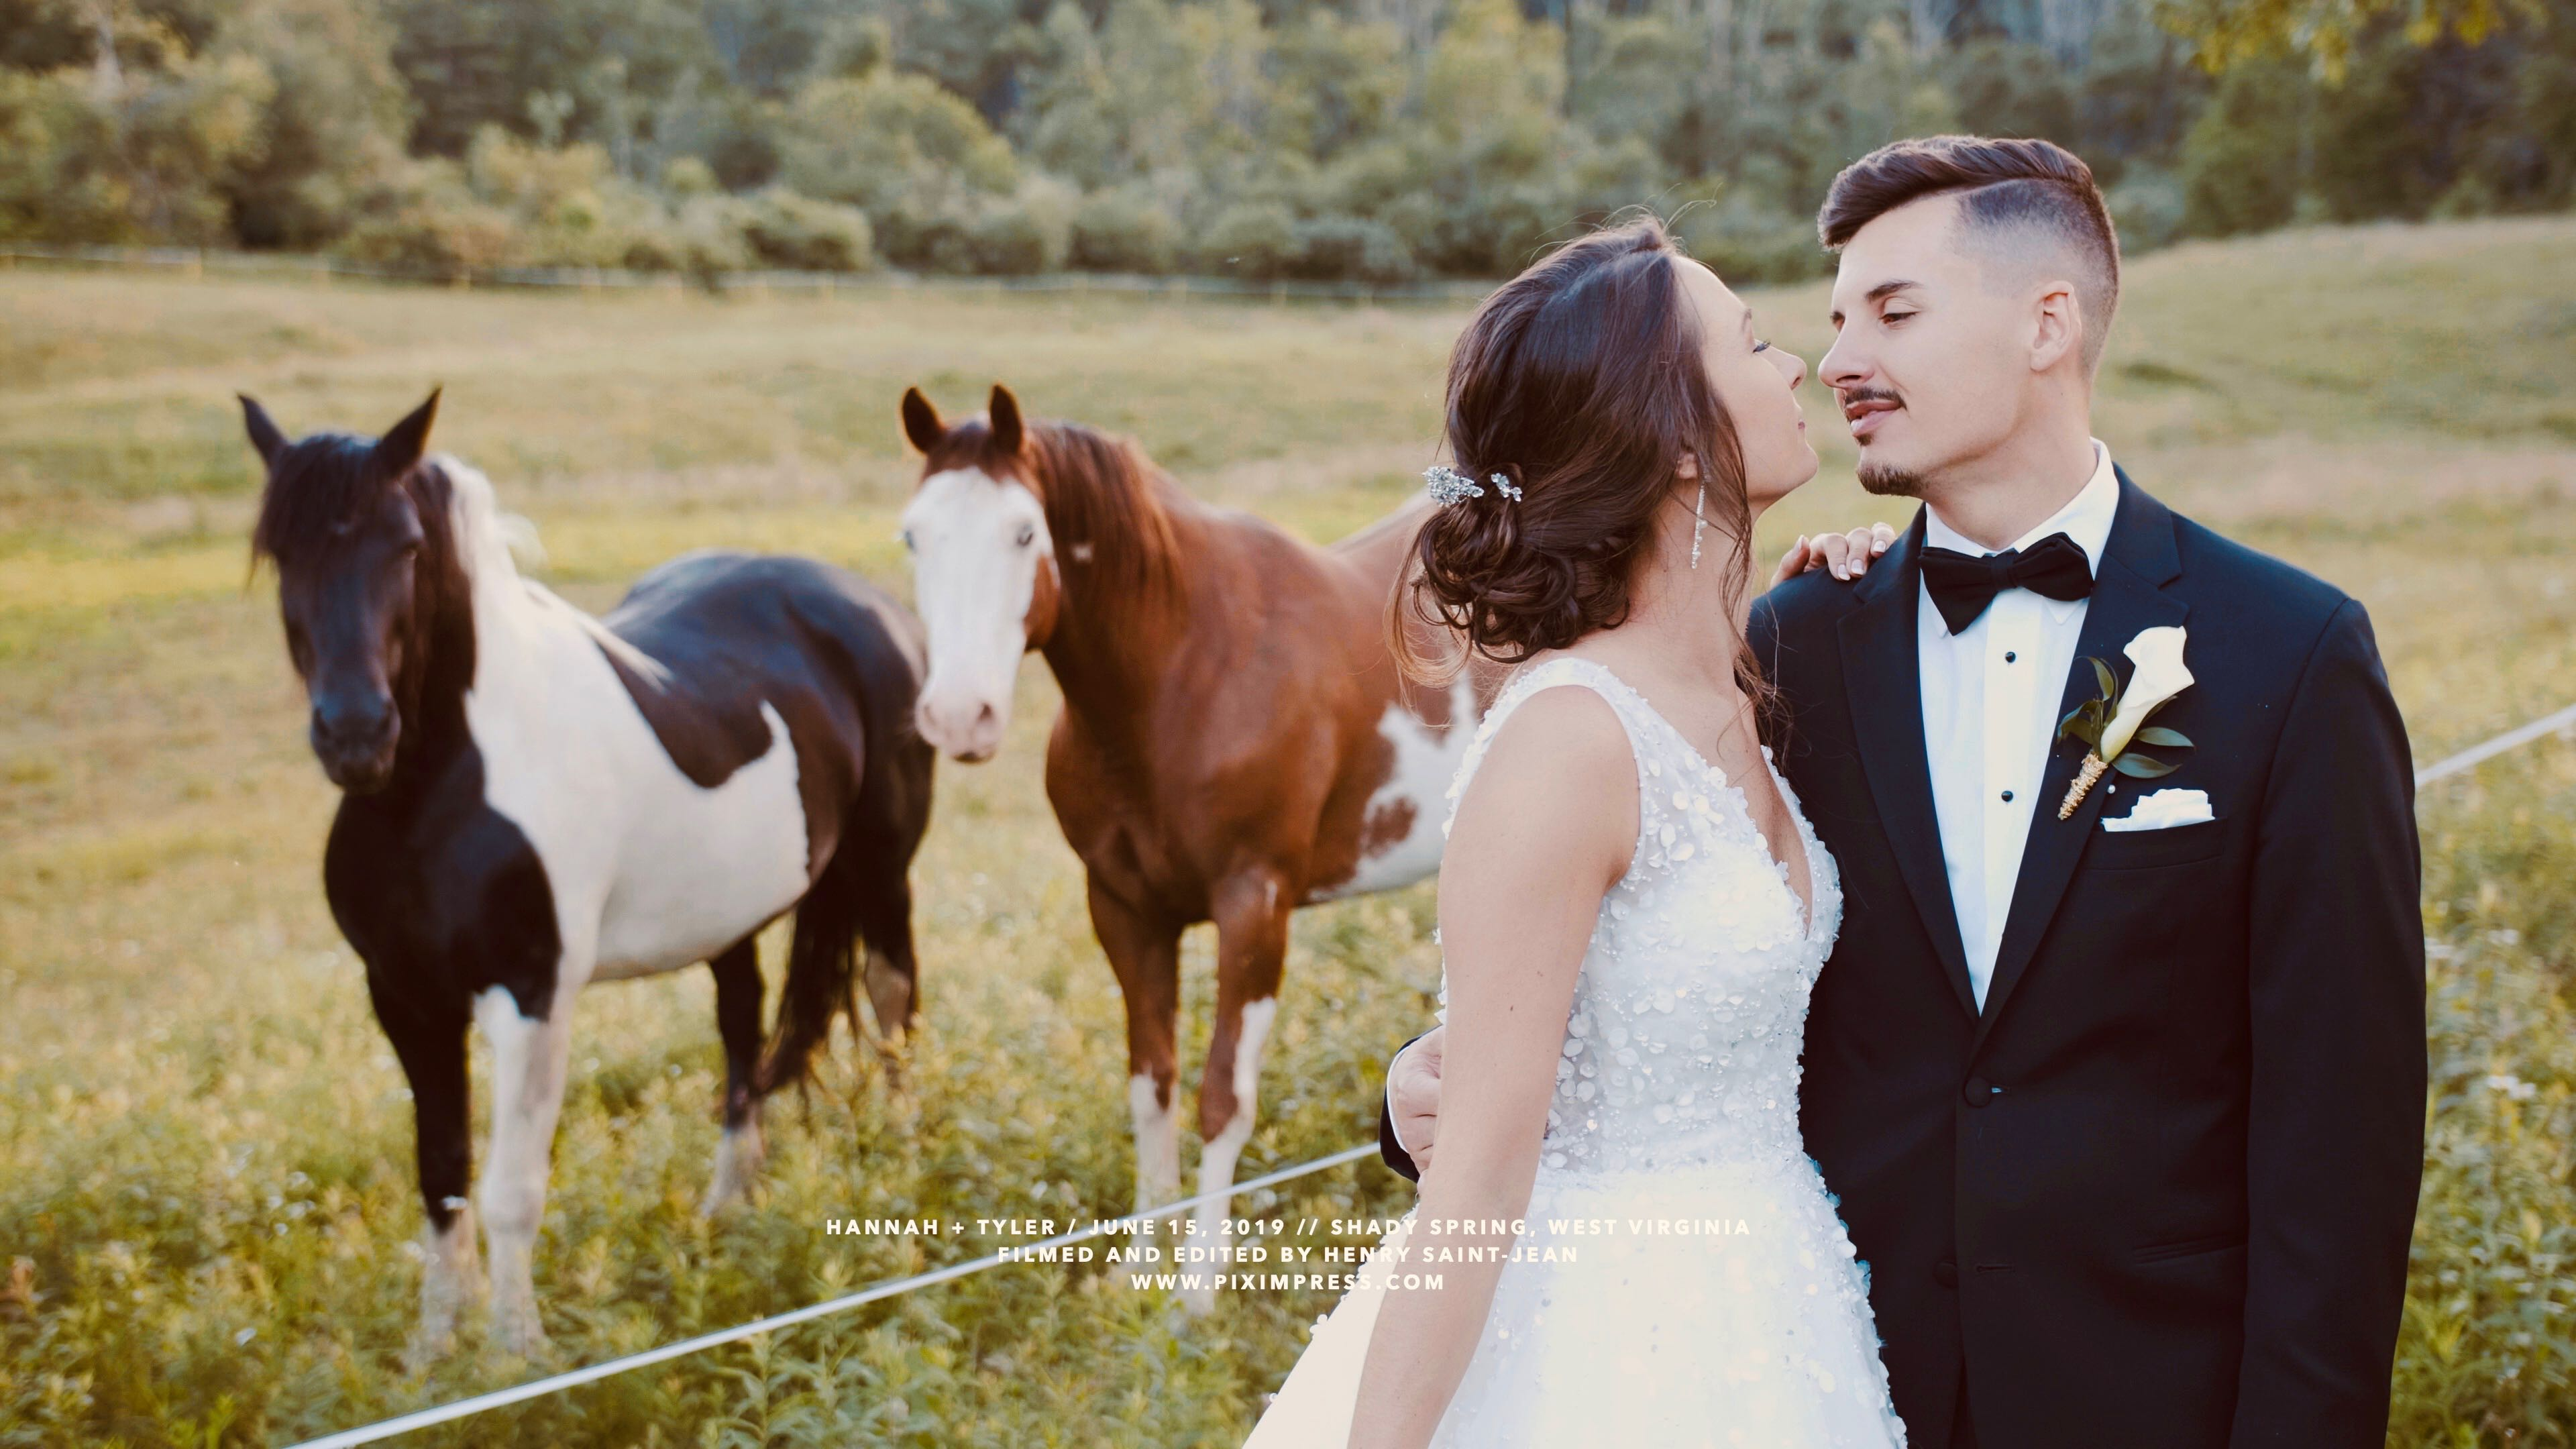 Hannah + Tyler | Shady Spring, West Virginia | Mia Bella Grand